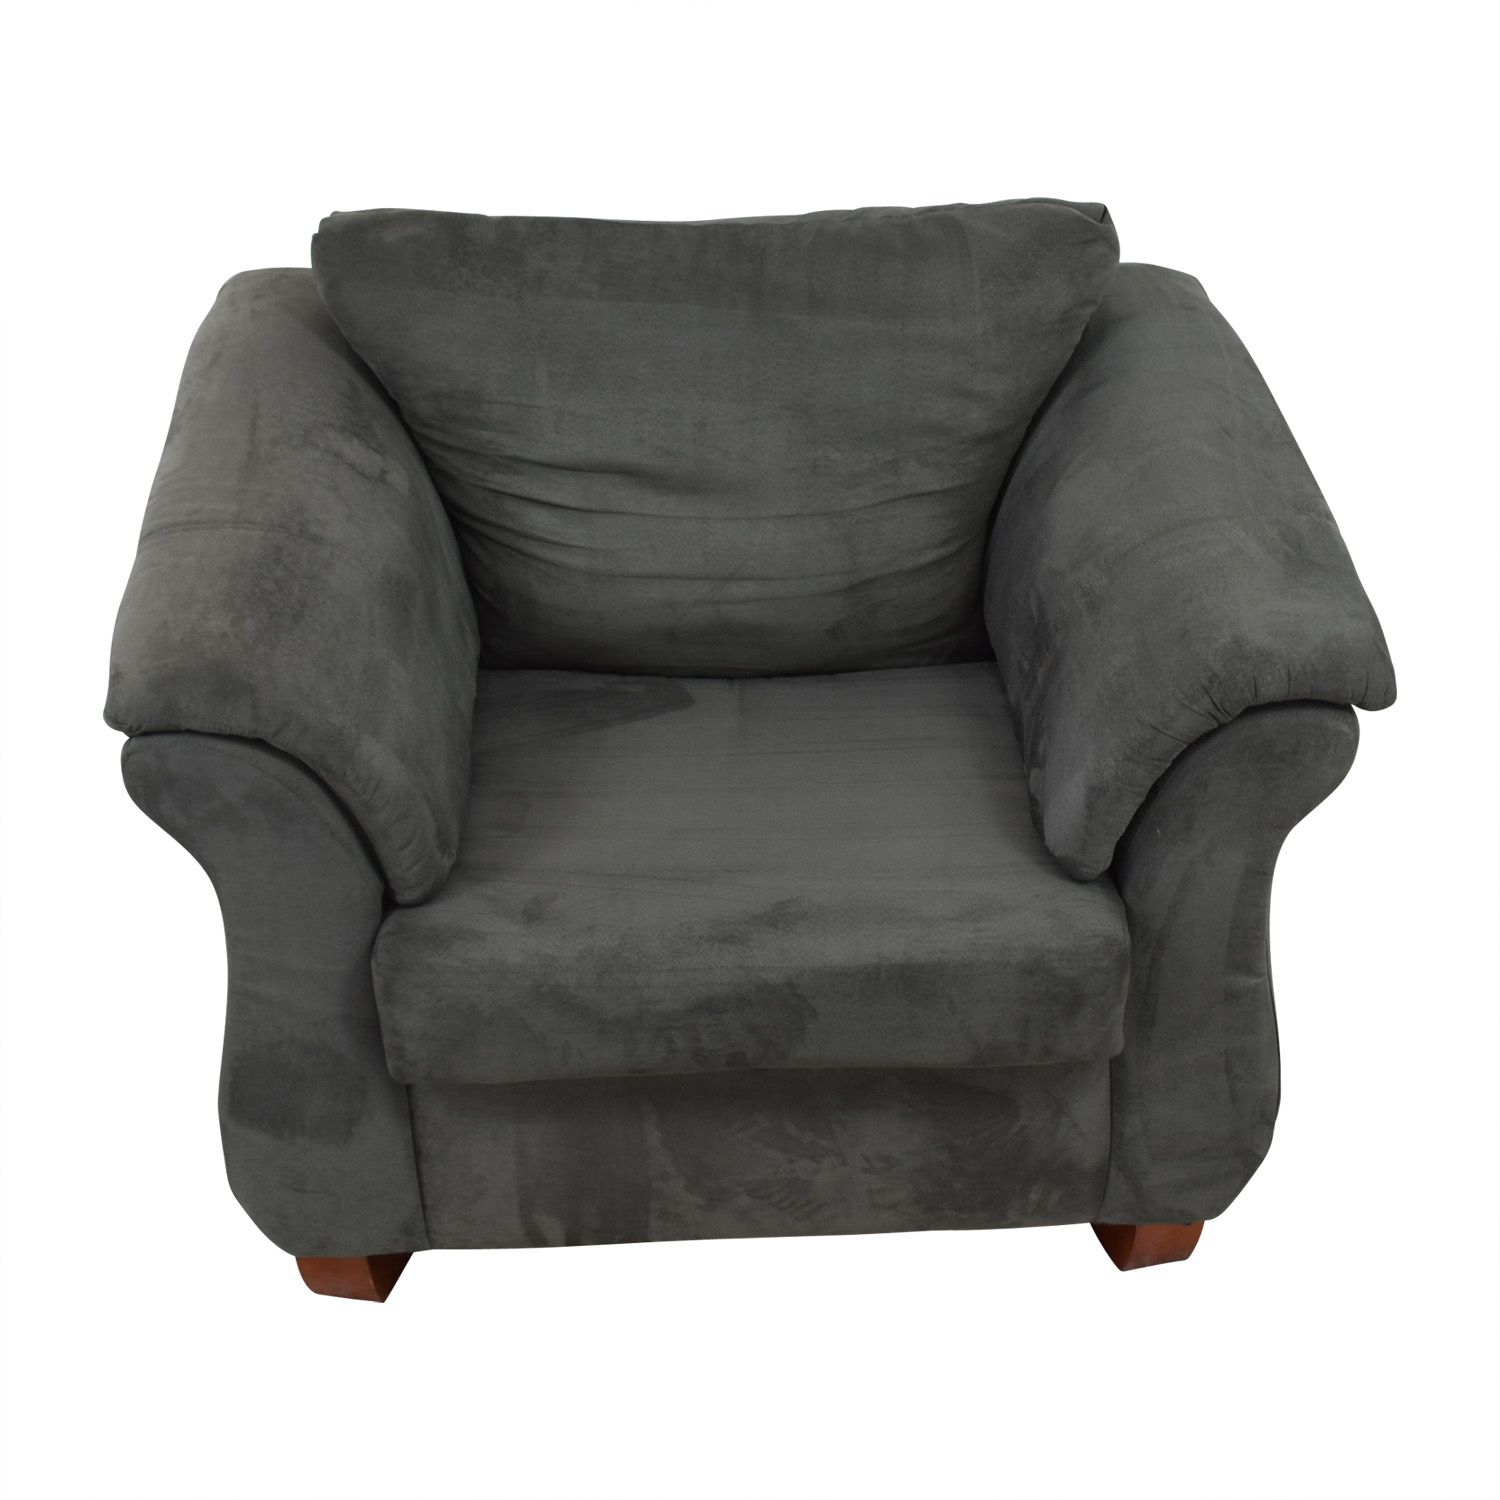 Value City Furniture Value City Furniture Grey Loveseat Accent Chair price